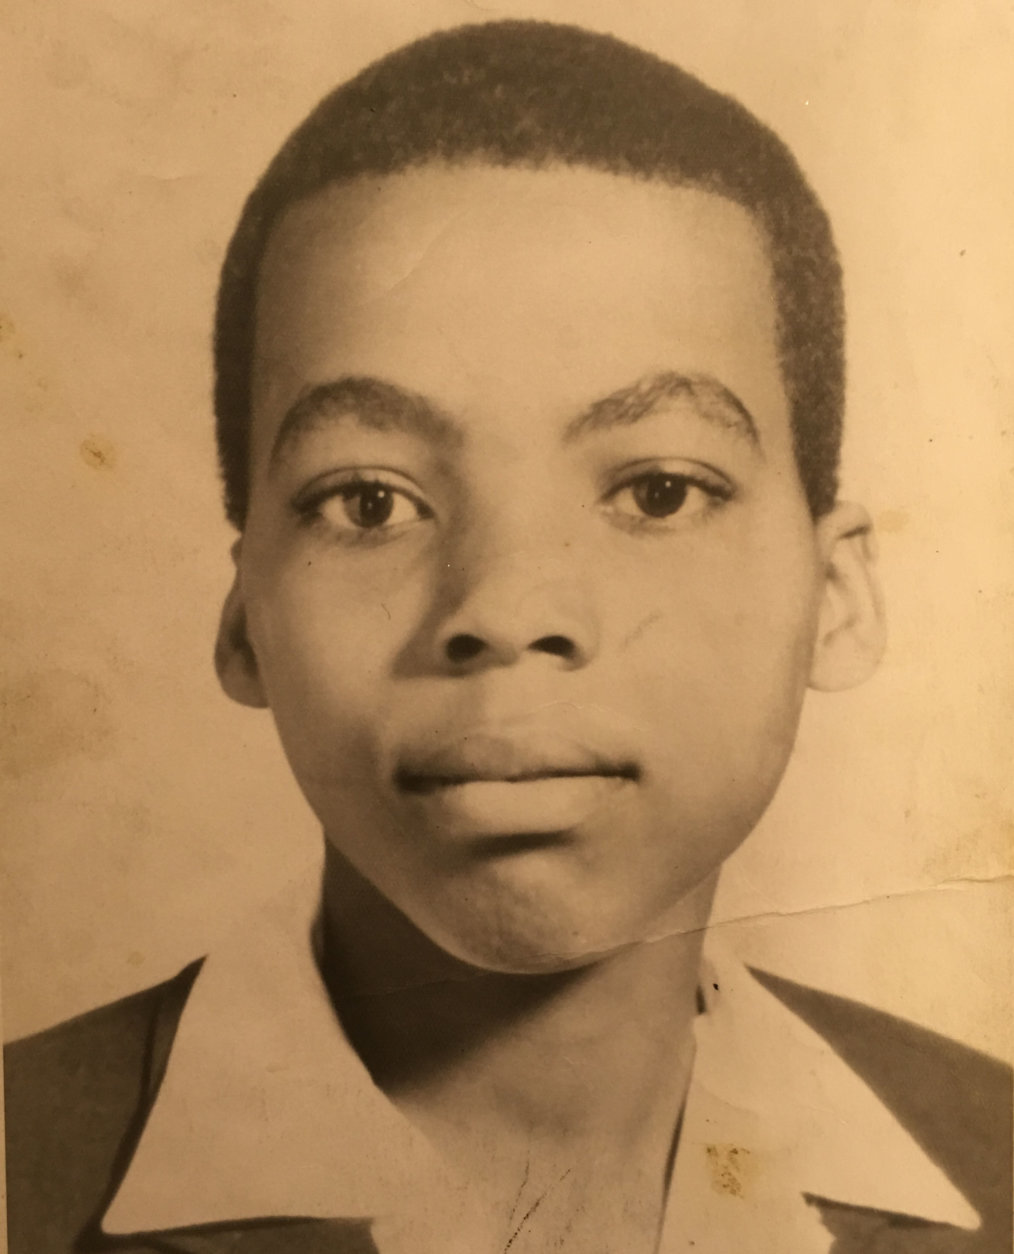 Vincent Lawson's last school portrait before he went missing during the April 1968 riots at age 15. In 1971, construction workers disocvered his remains inside a fire-damaged H Street warehouse that had been boarded up since the riots. (Courtesy Vanessa Lawson Dixon)